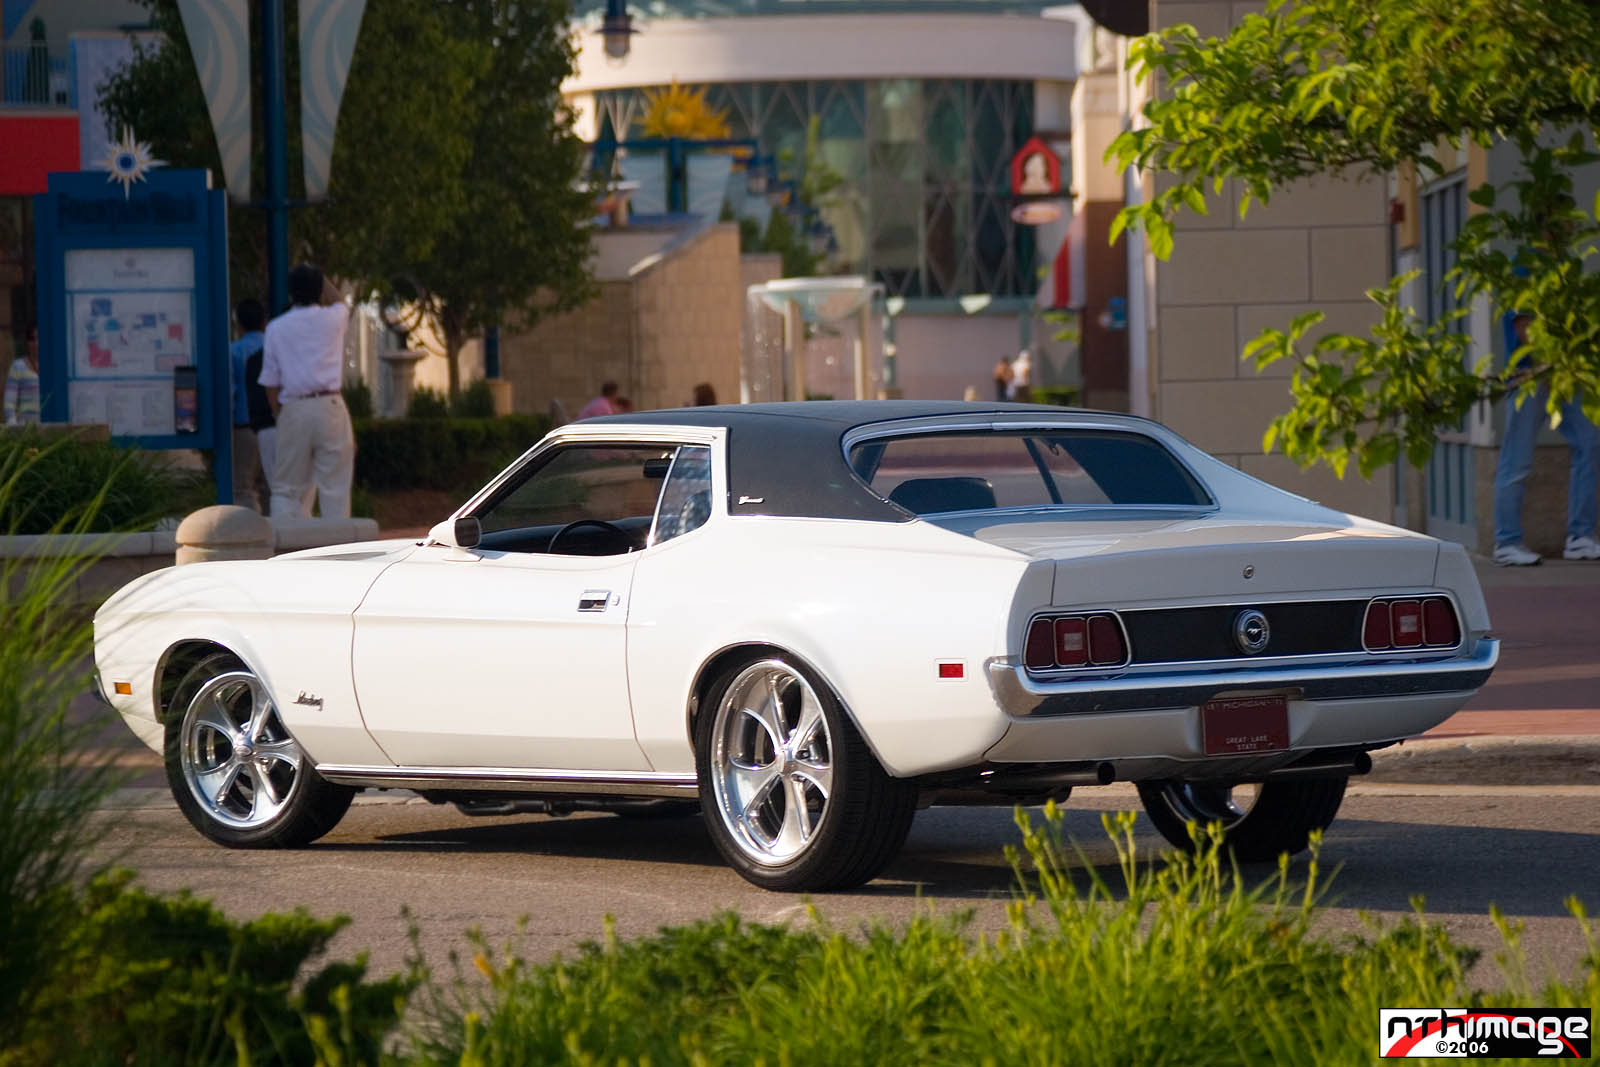 Mustang Gt >> Nthimage - 1971 Ford Mustang